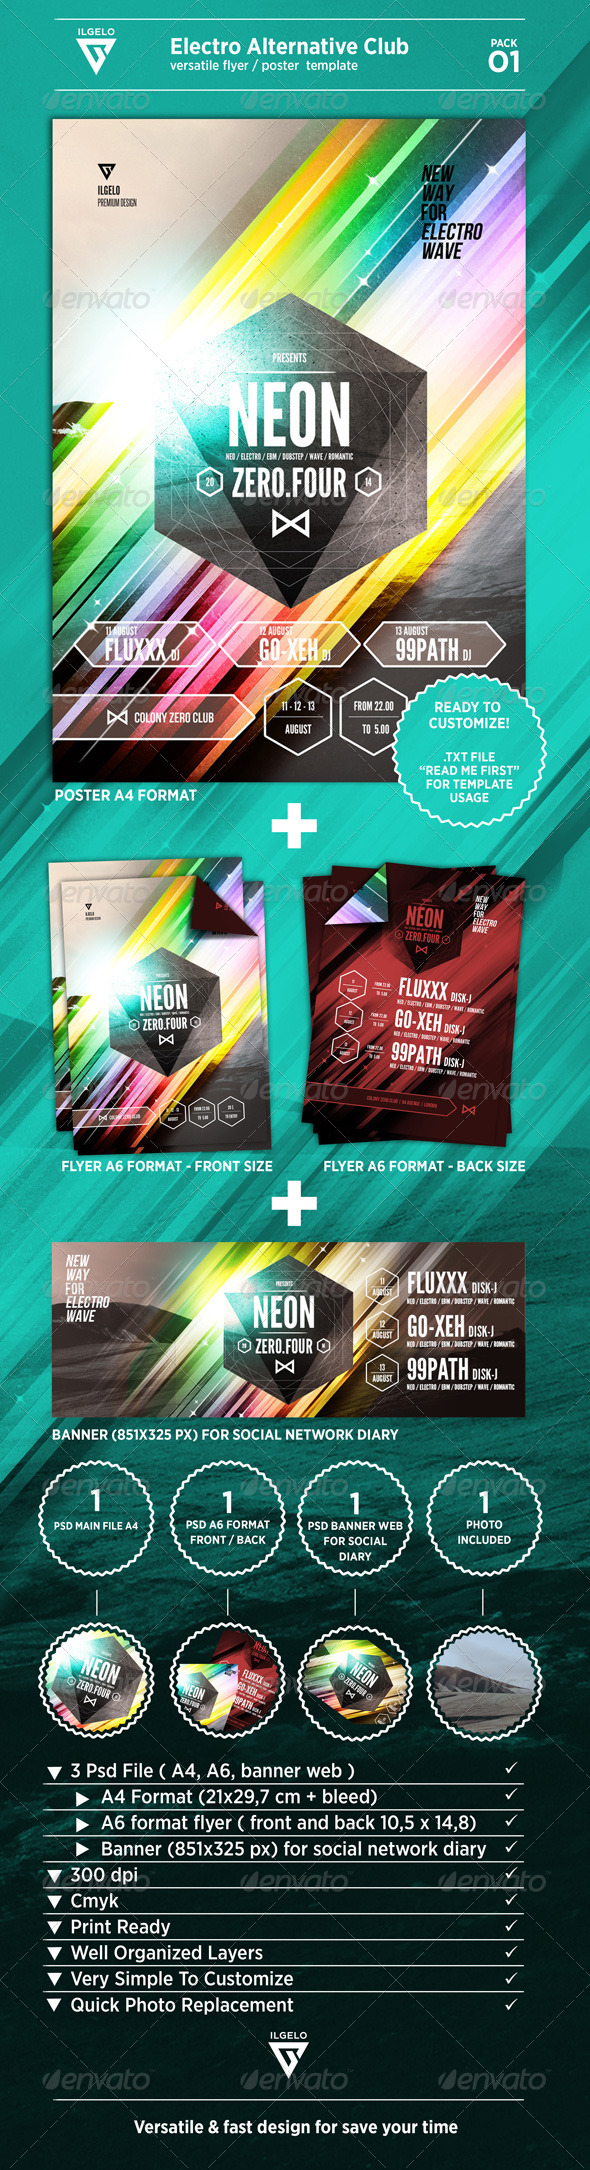 Electro Alternative Club Poster Pack 01